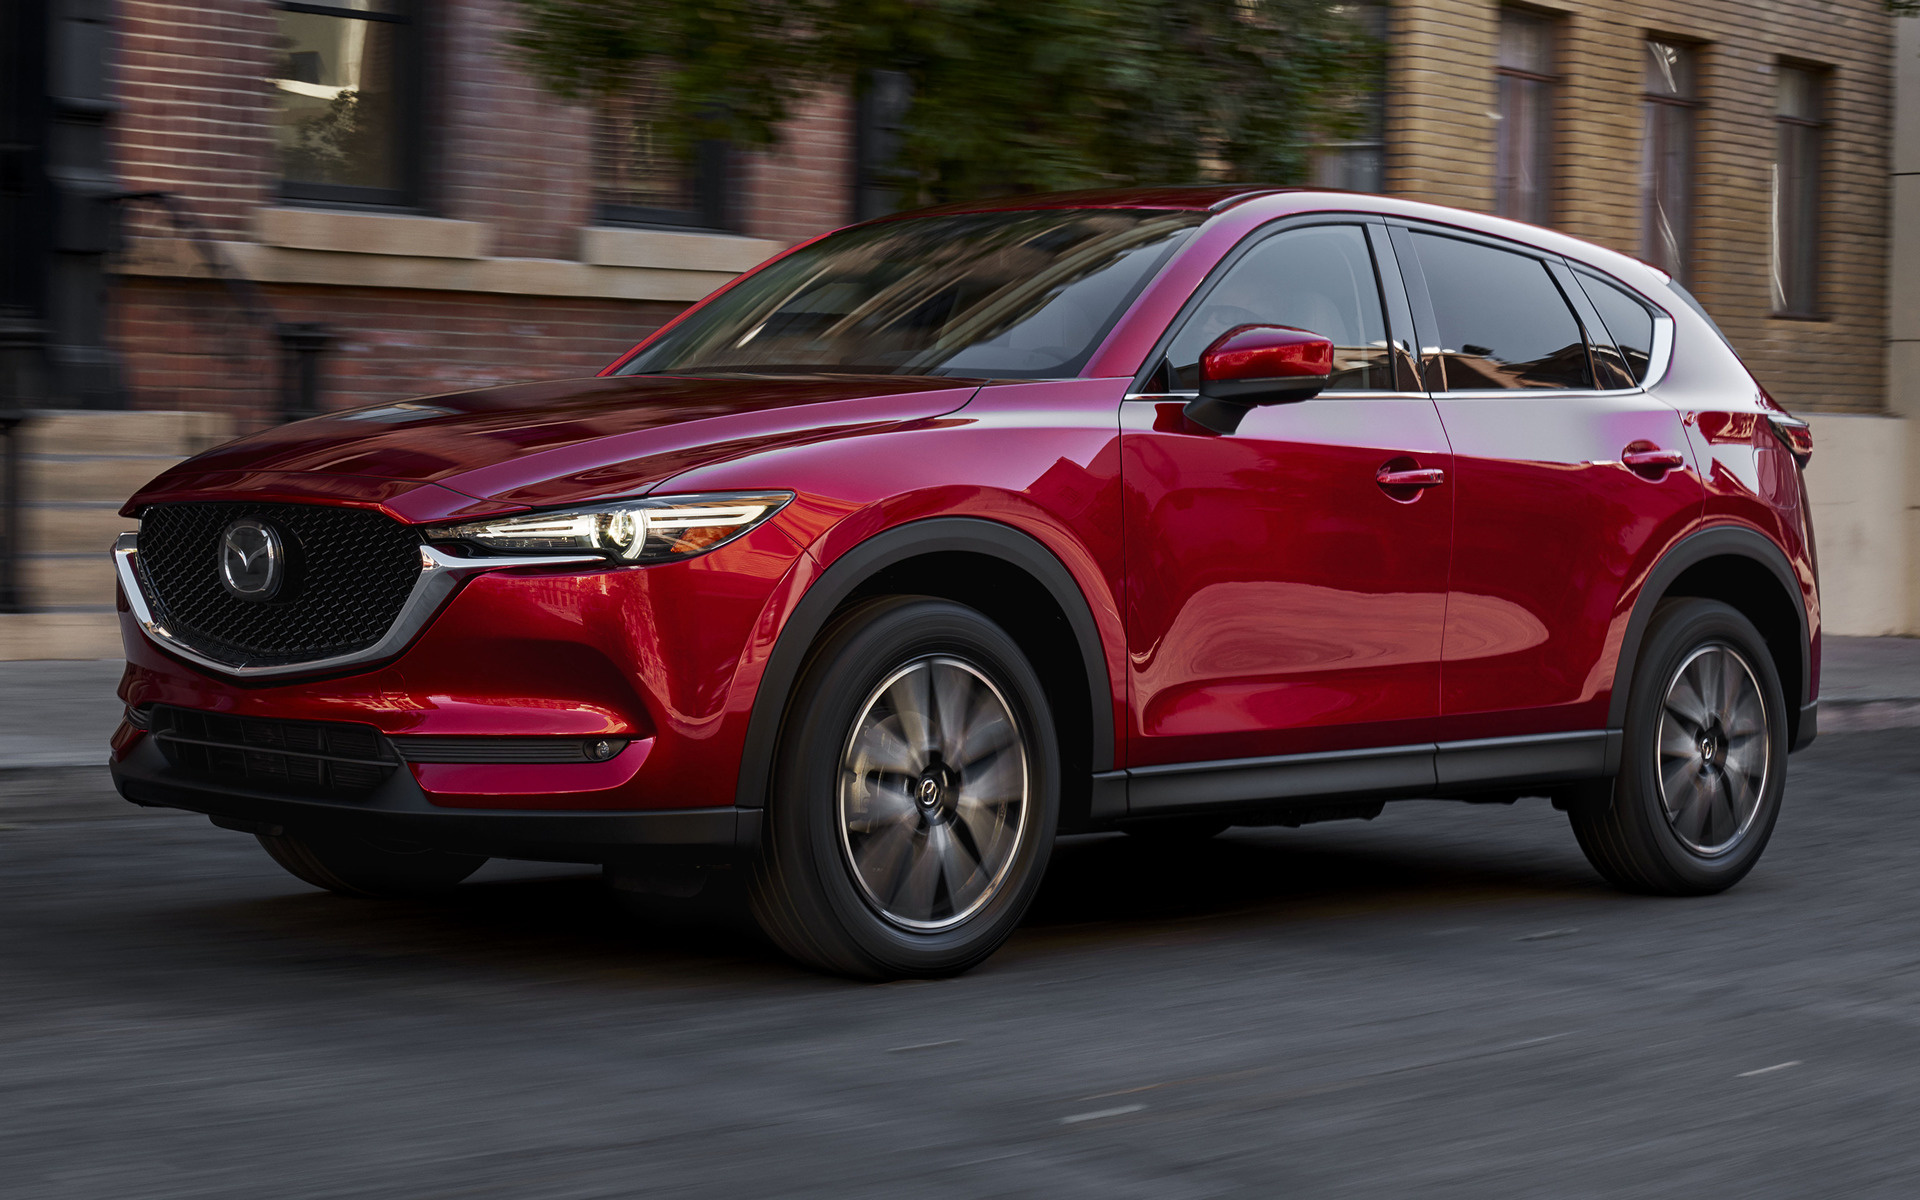 1920x1200 - Mazda CX-5 Wallpapers 15